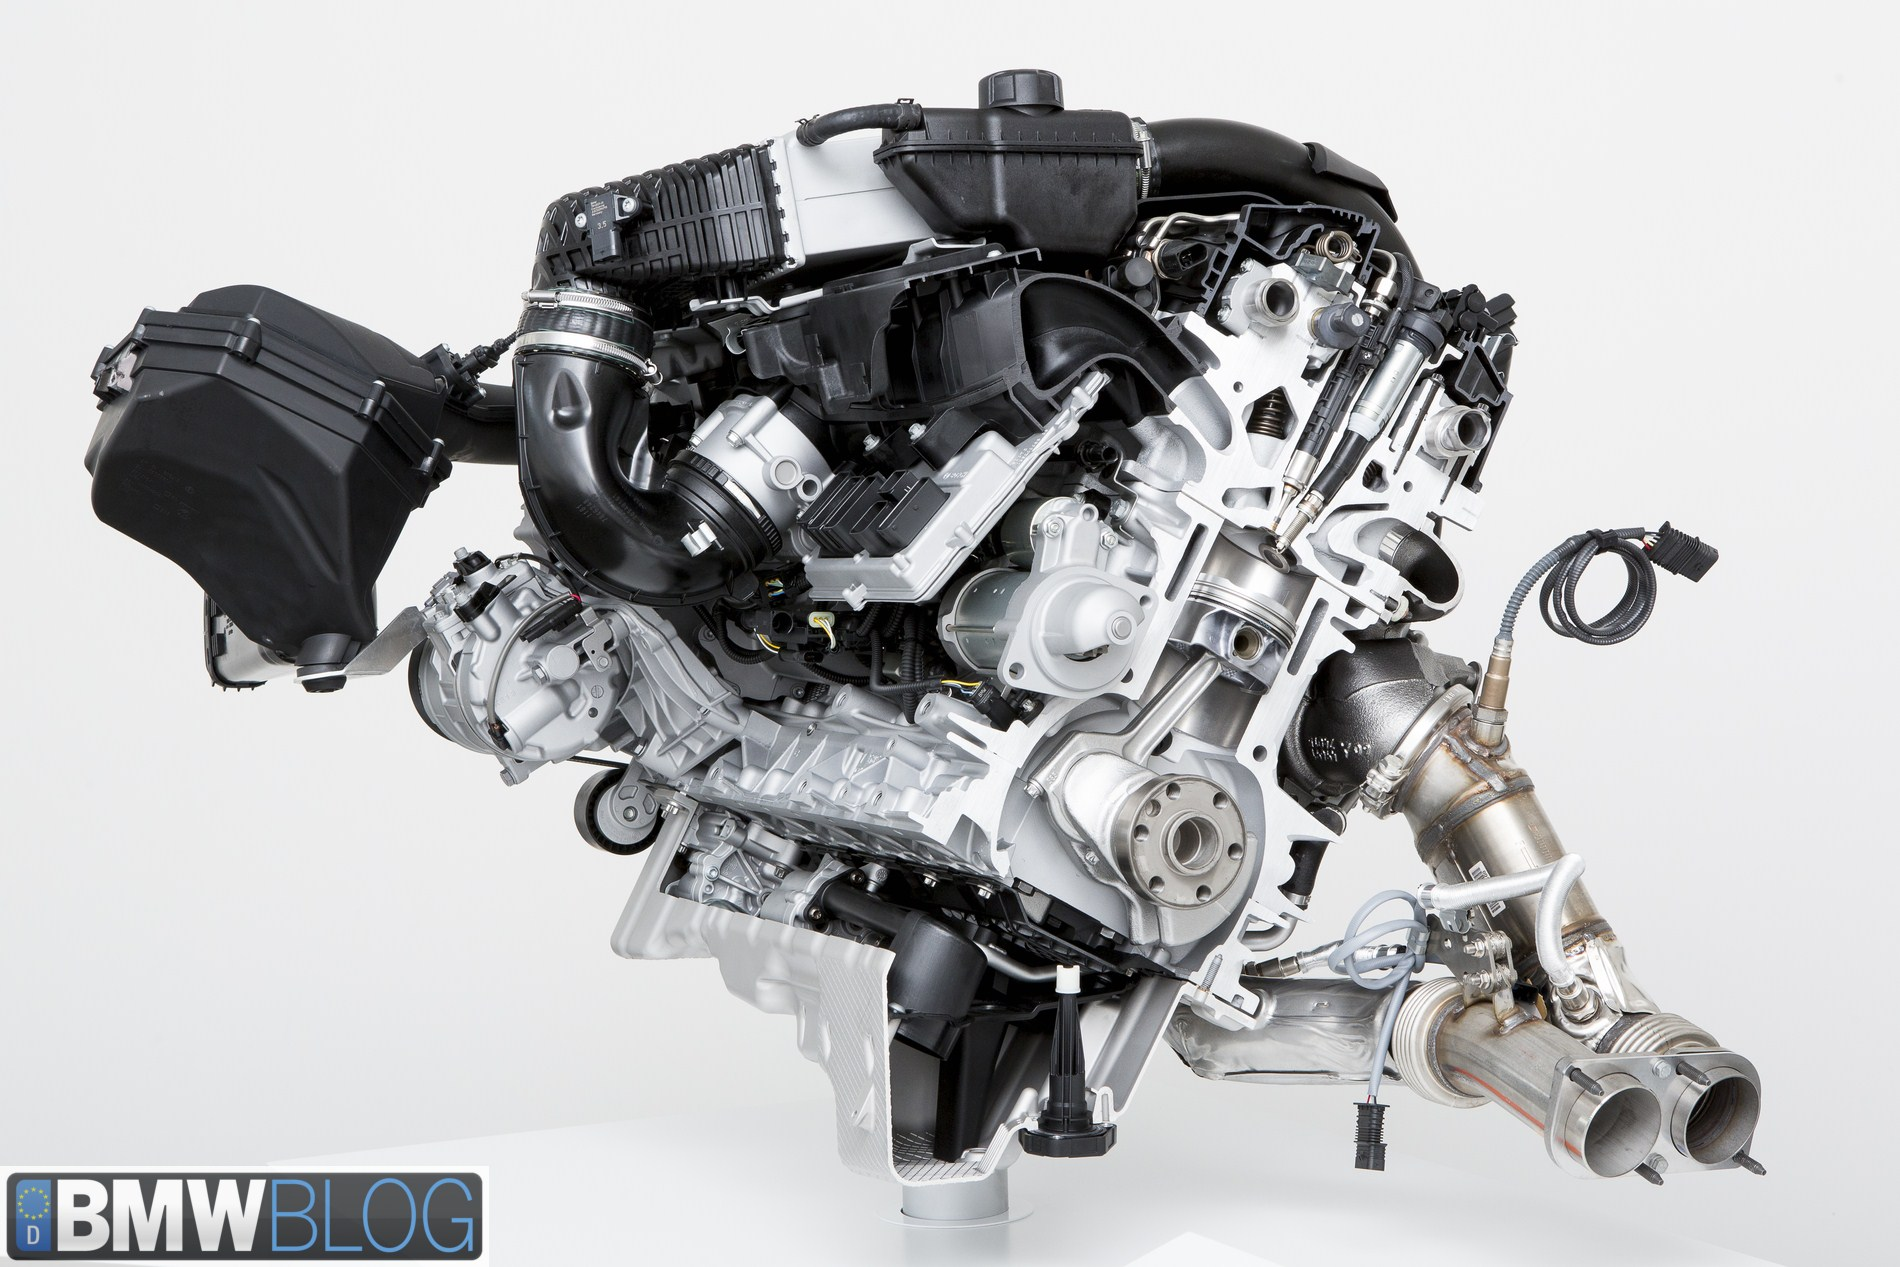 hight resolution of bmw m3 engine diagram wiring diagram for you bmw e92 m3 engine diagram m3 engine diagram